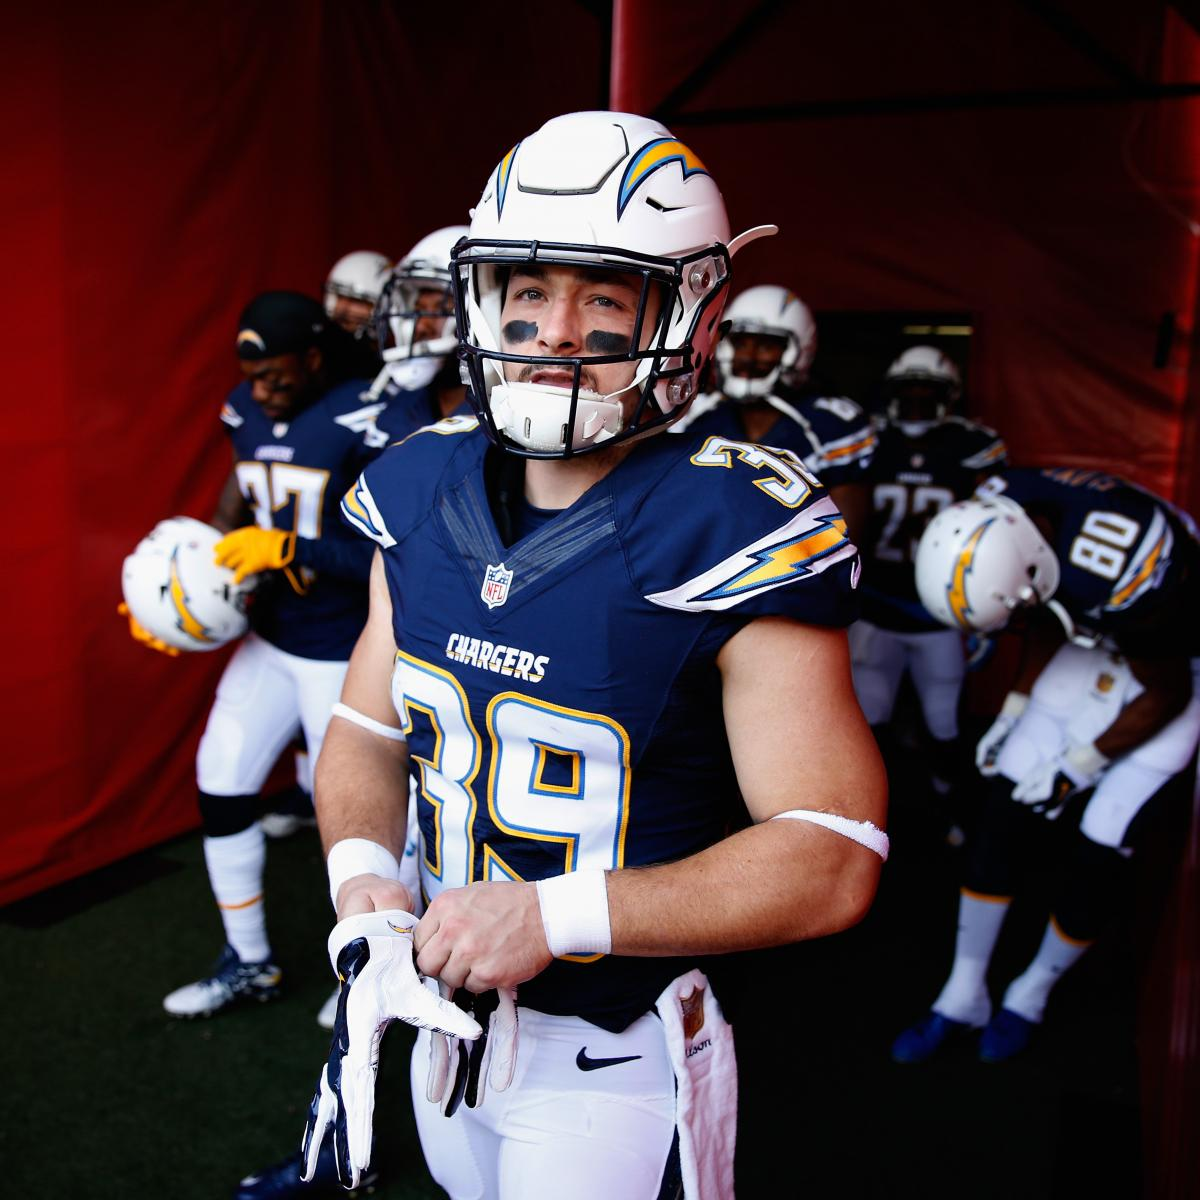 San Diego Chargers Chiefs Game: Chargers Vs. Chiefs: What's The Game Plan For San Diego